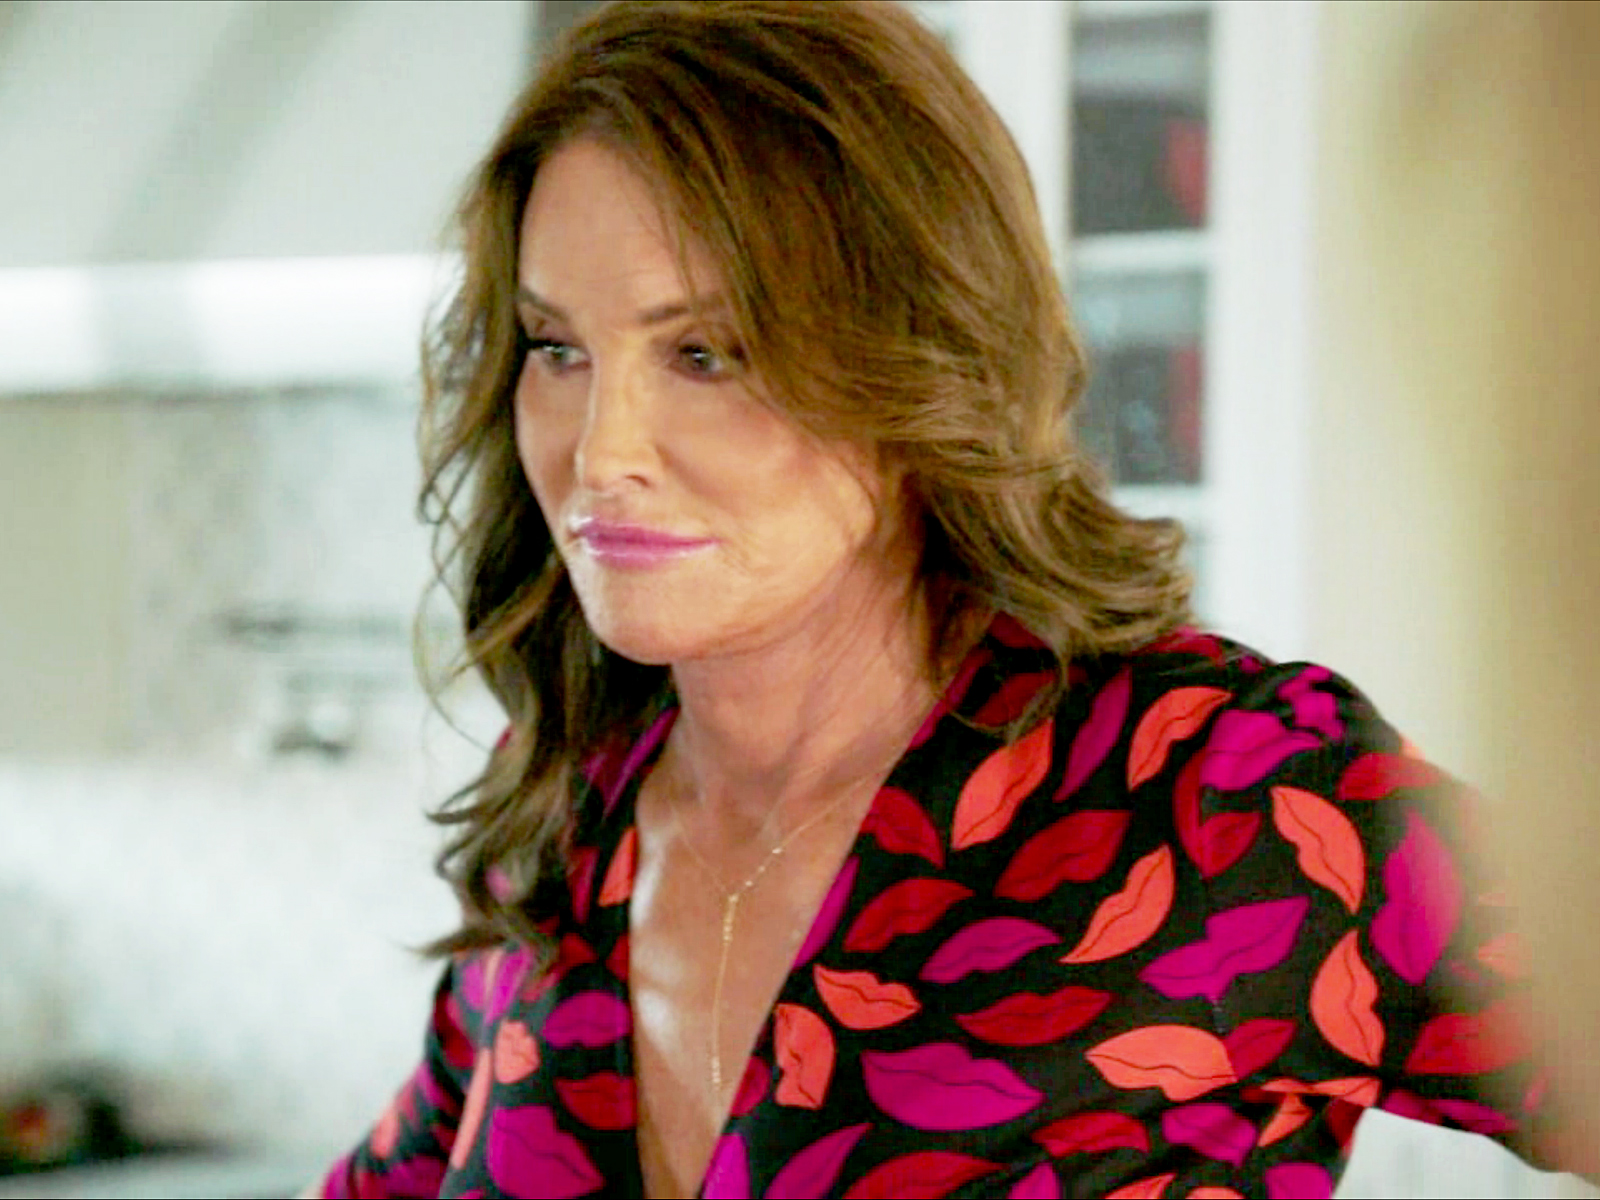 Caitlyn Jenner Wallpapers High Resolution and Quality Download 1600x1200